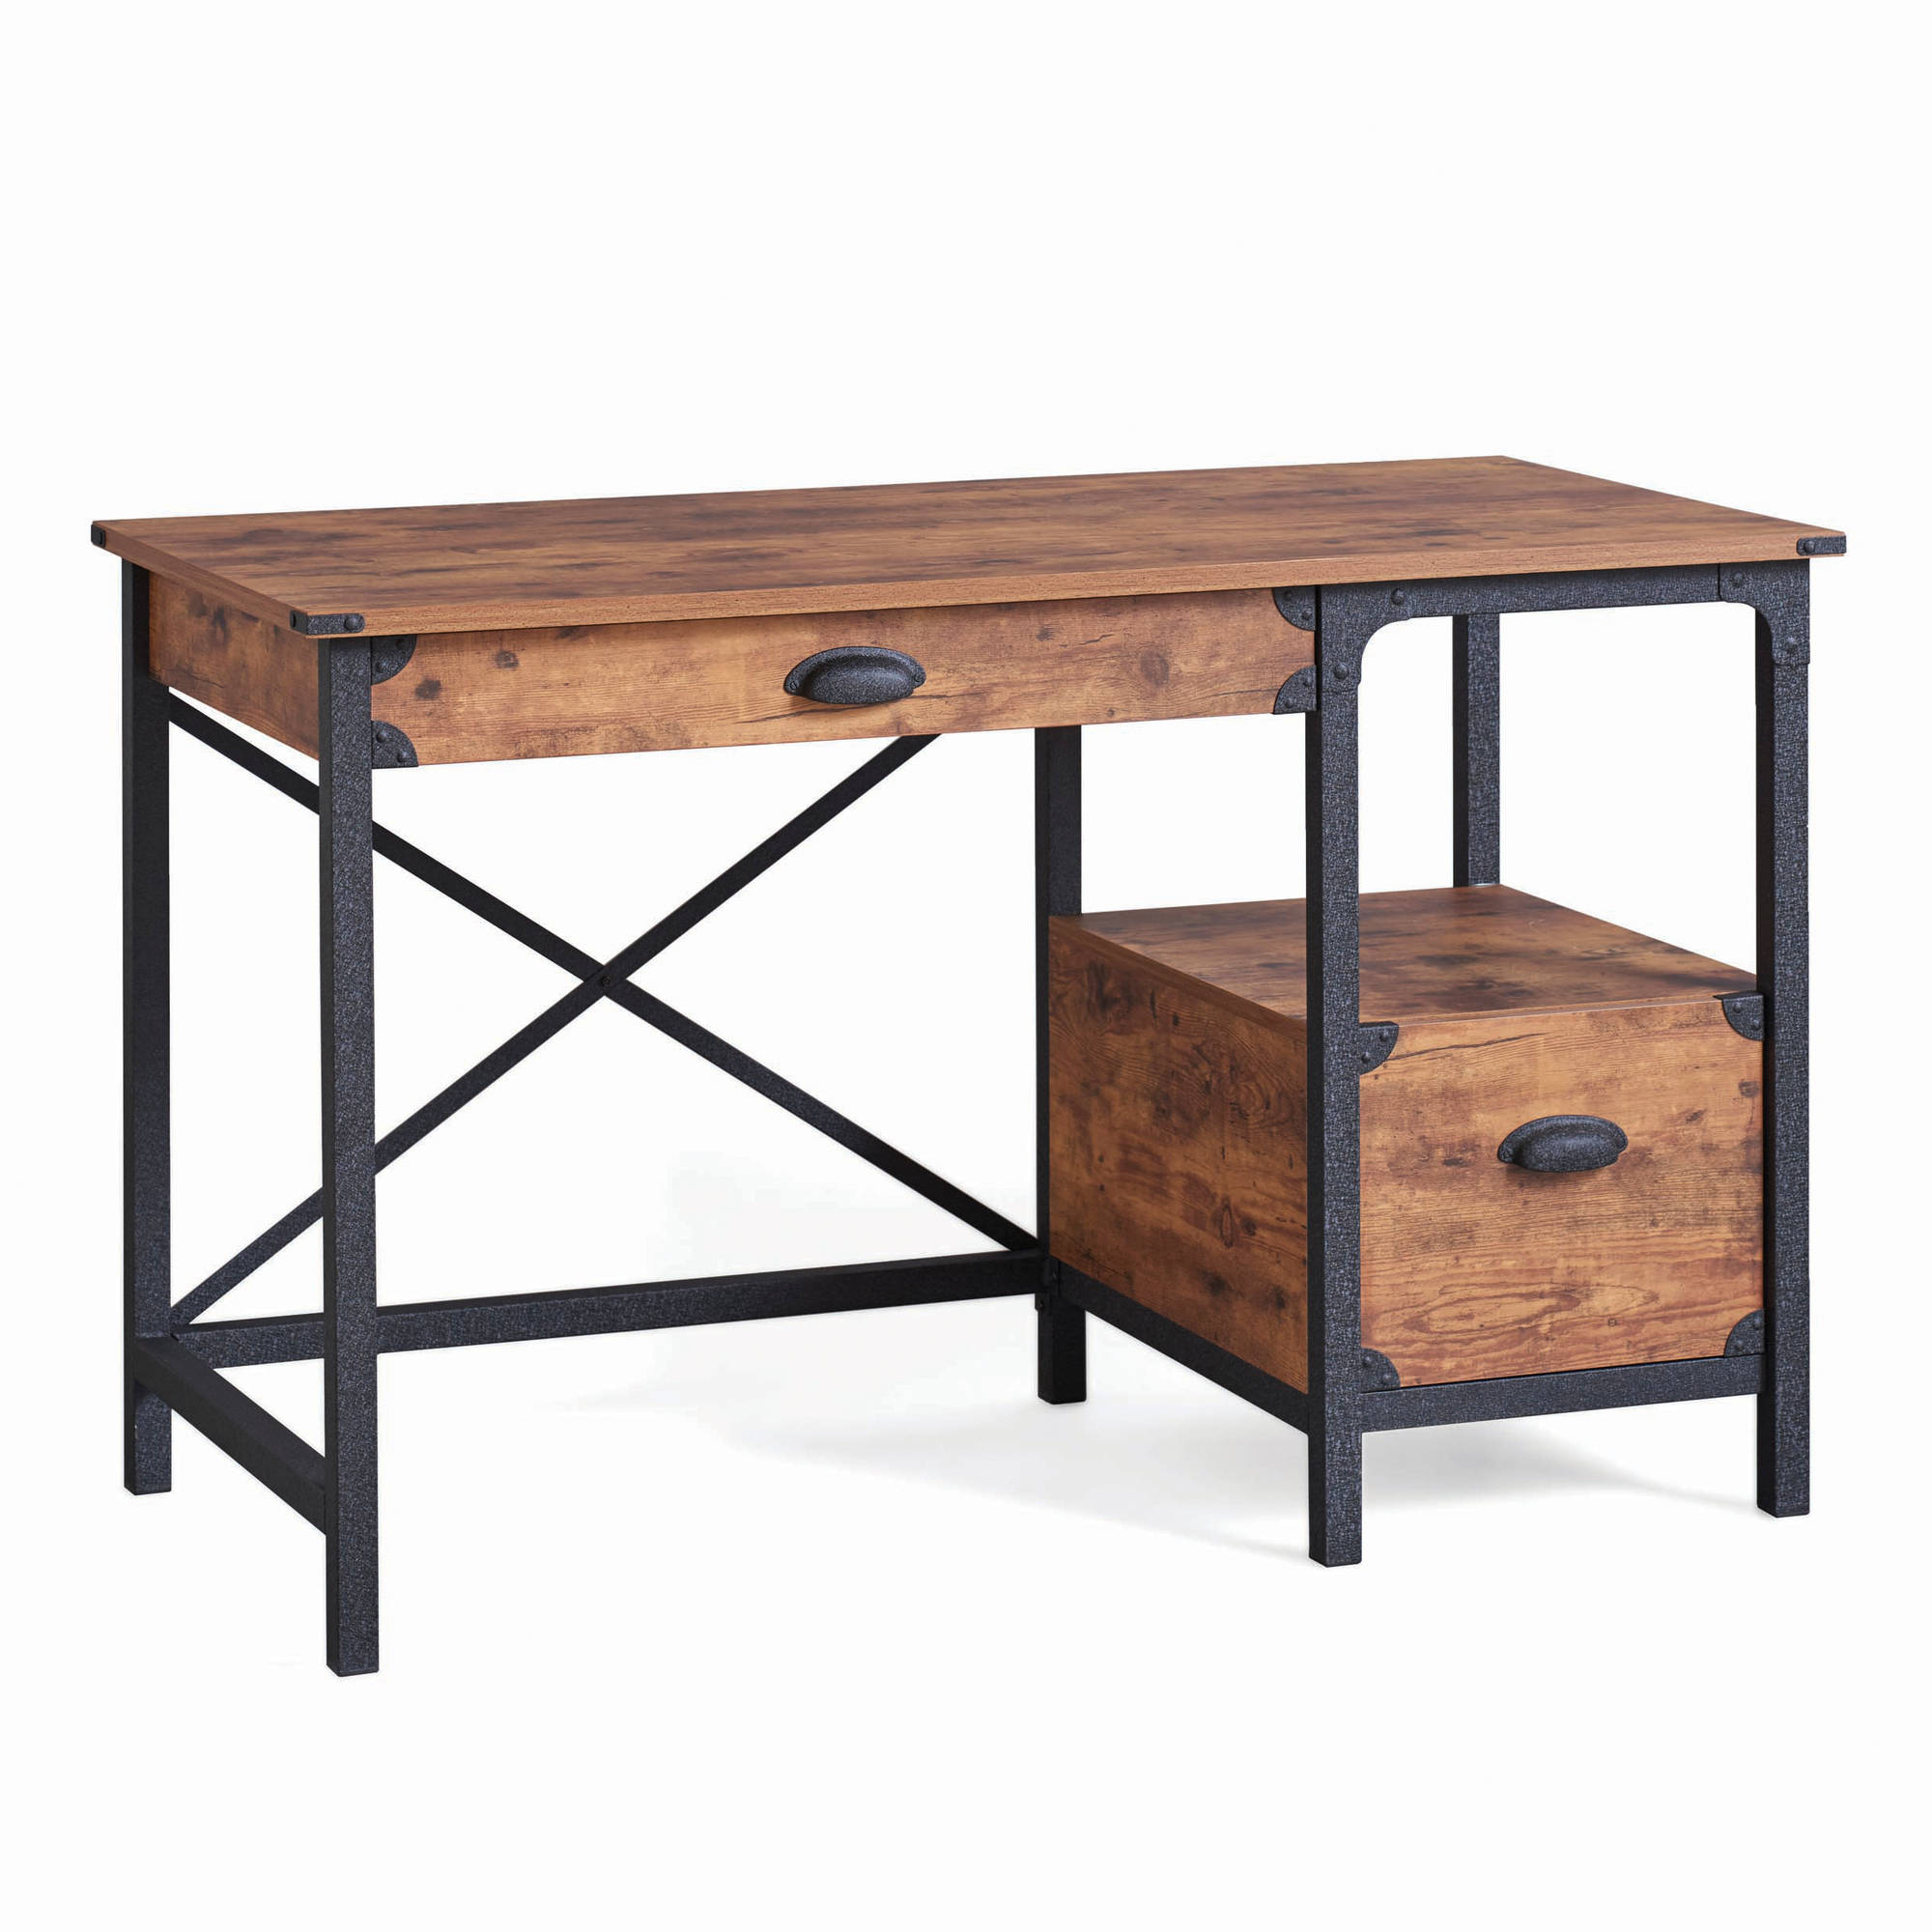 Charmant Better Homes And Gardens Rustic Country Desk, Weathered Pine Finish